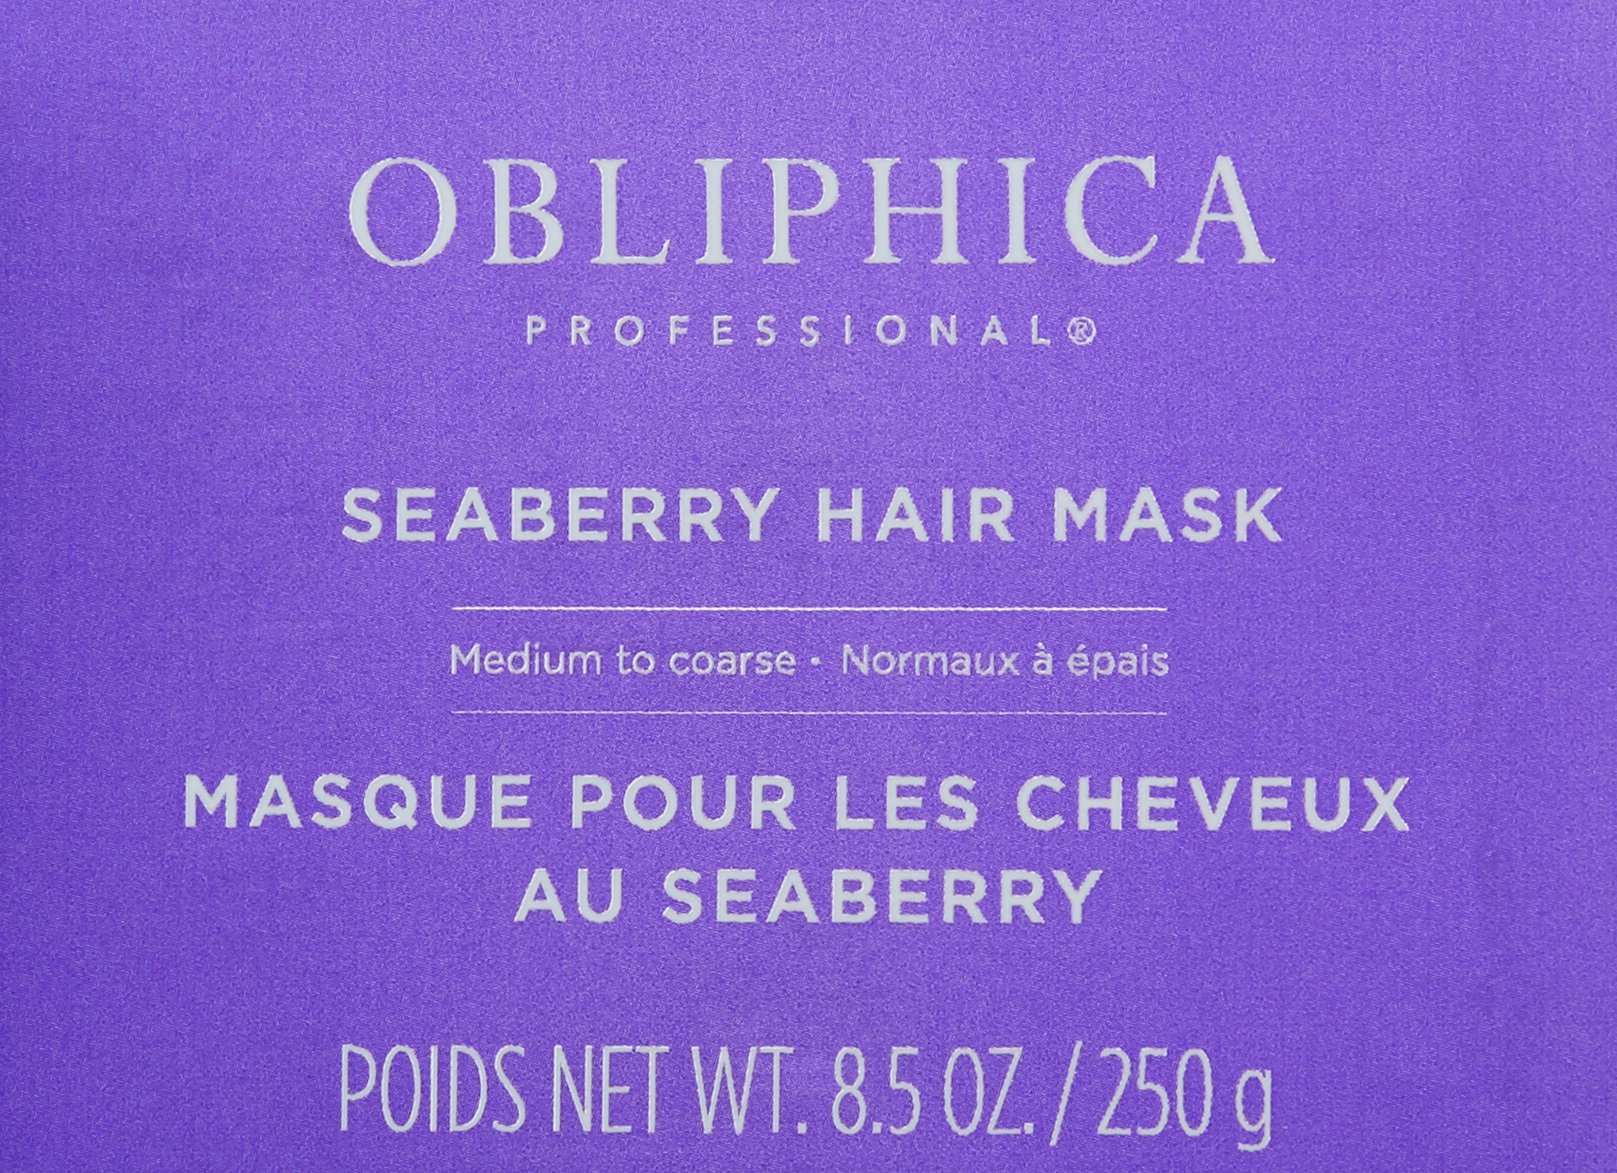 Obliphica Professional Seaberry Medium to Coarse Mask, 8.5 oz. by Obliphica Professional (Image #3)